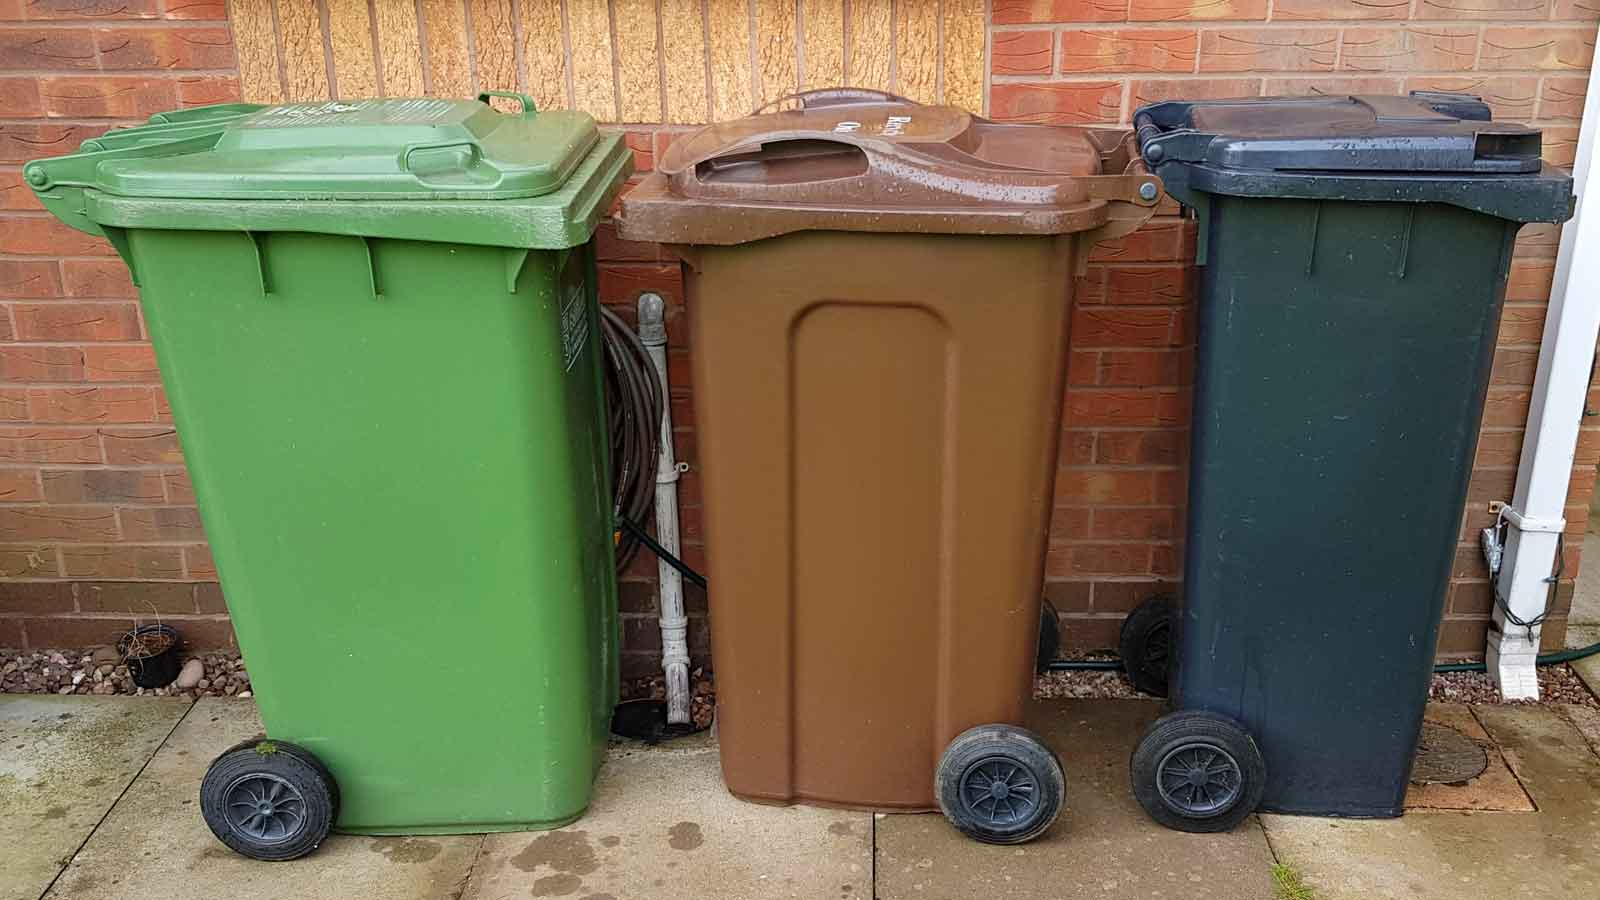 Council Considering Fortnightly Bin Collections